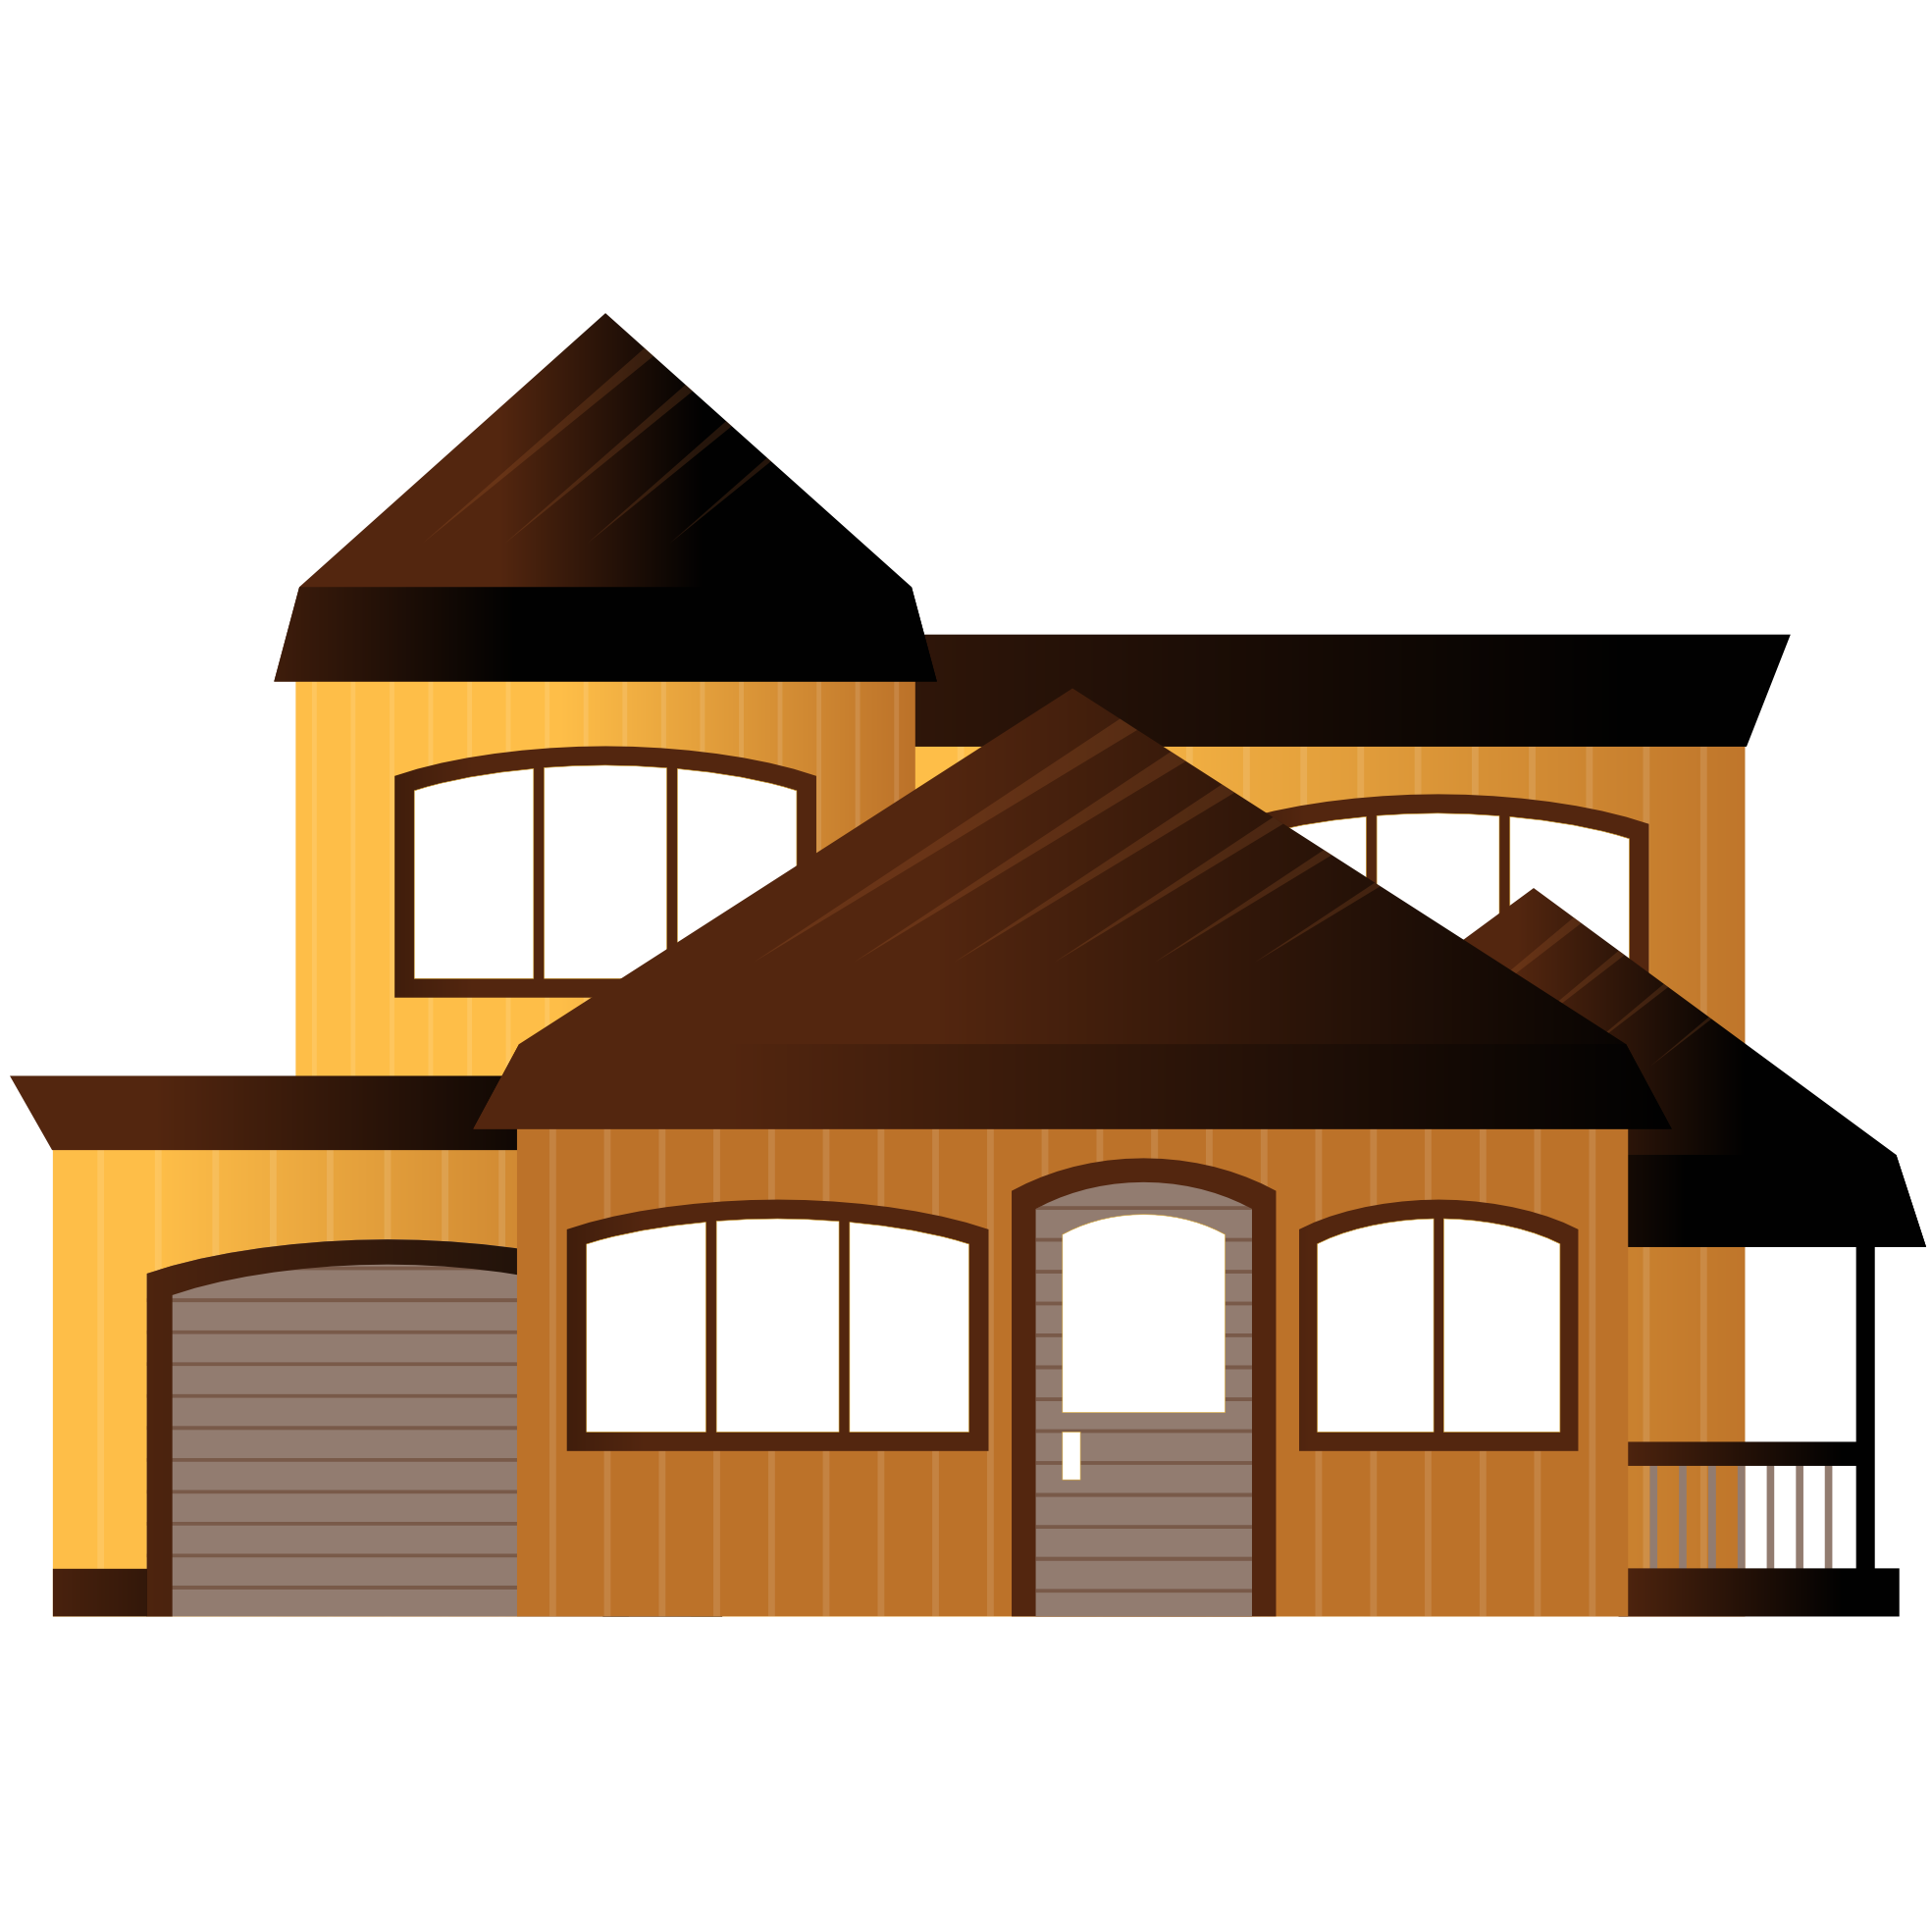 House architectural styles clipart picture transparent library clipartist.net » Clip Art » Abstract Shop Store House 1 Scalable ... picture transparent library